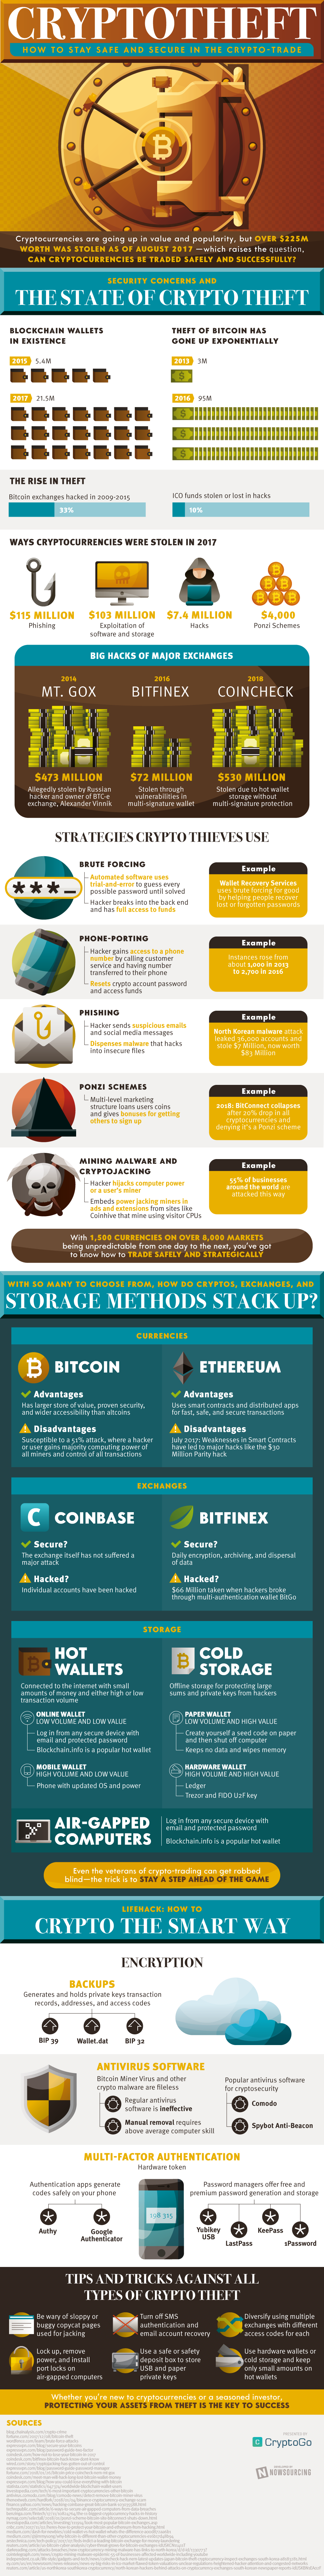 Is There A Crypto Theft Problem? [Infographic] 1